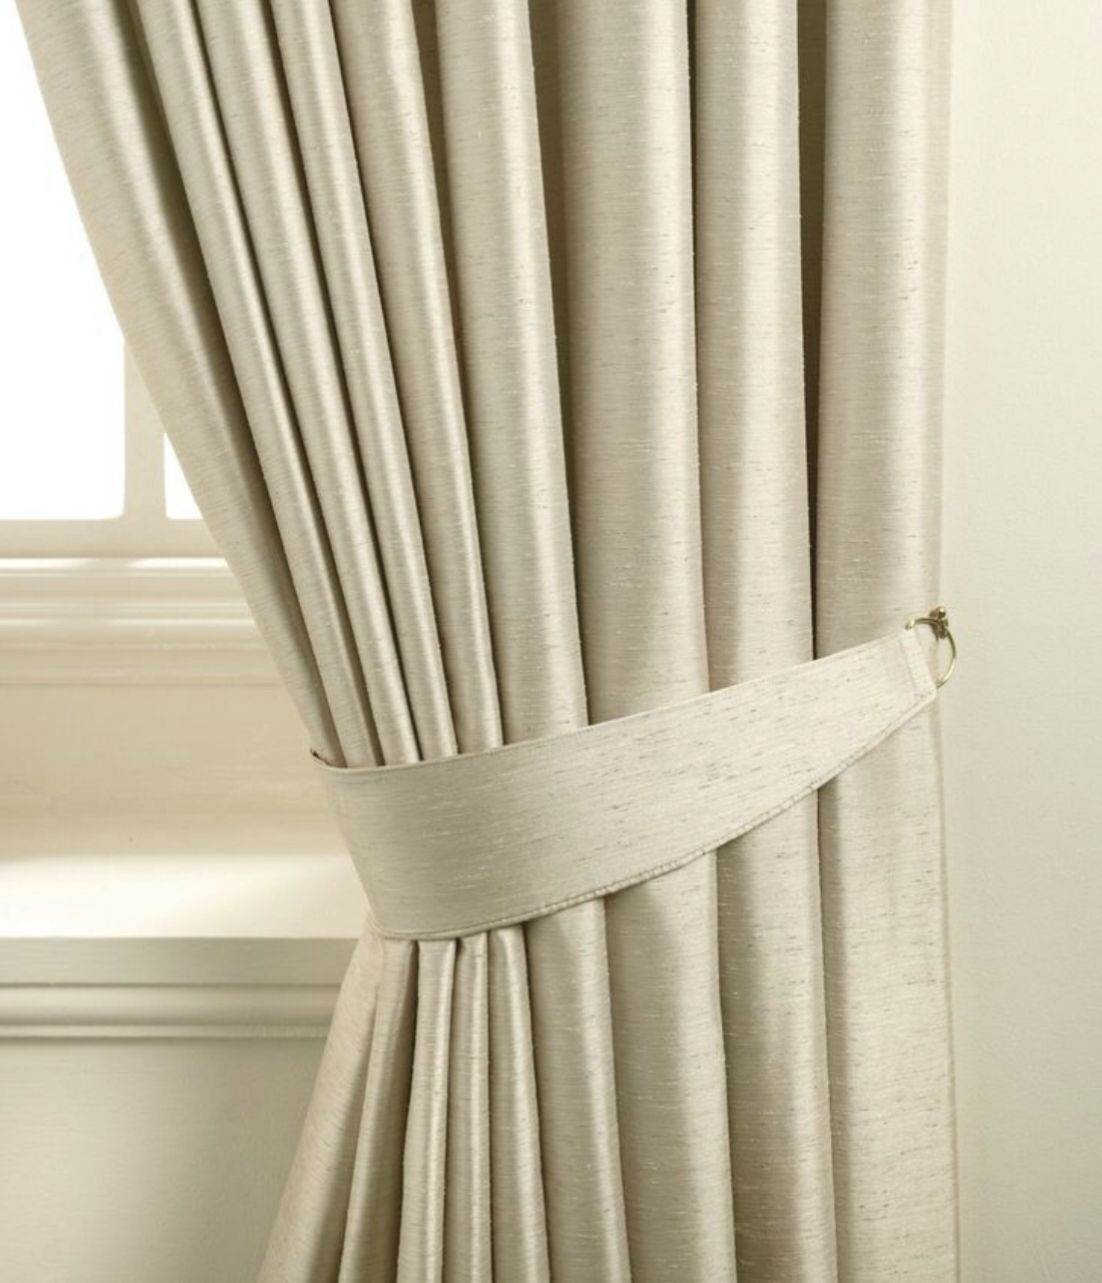 Pin By John Donaldson On Window Coverings Curtain Tie Backs